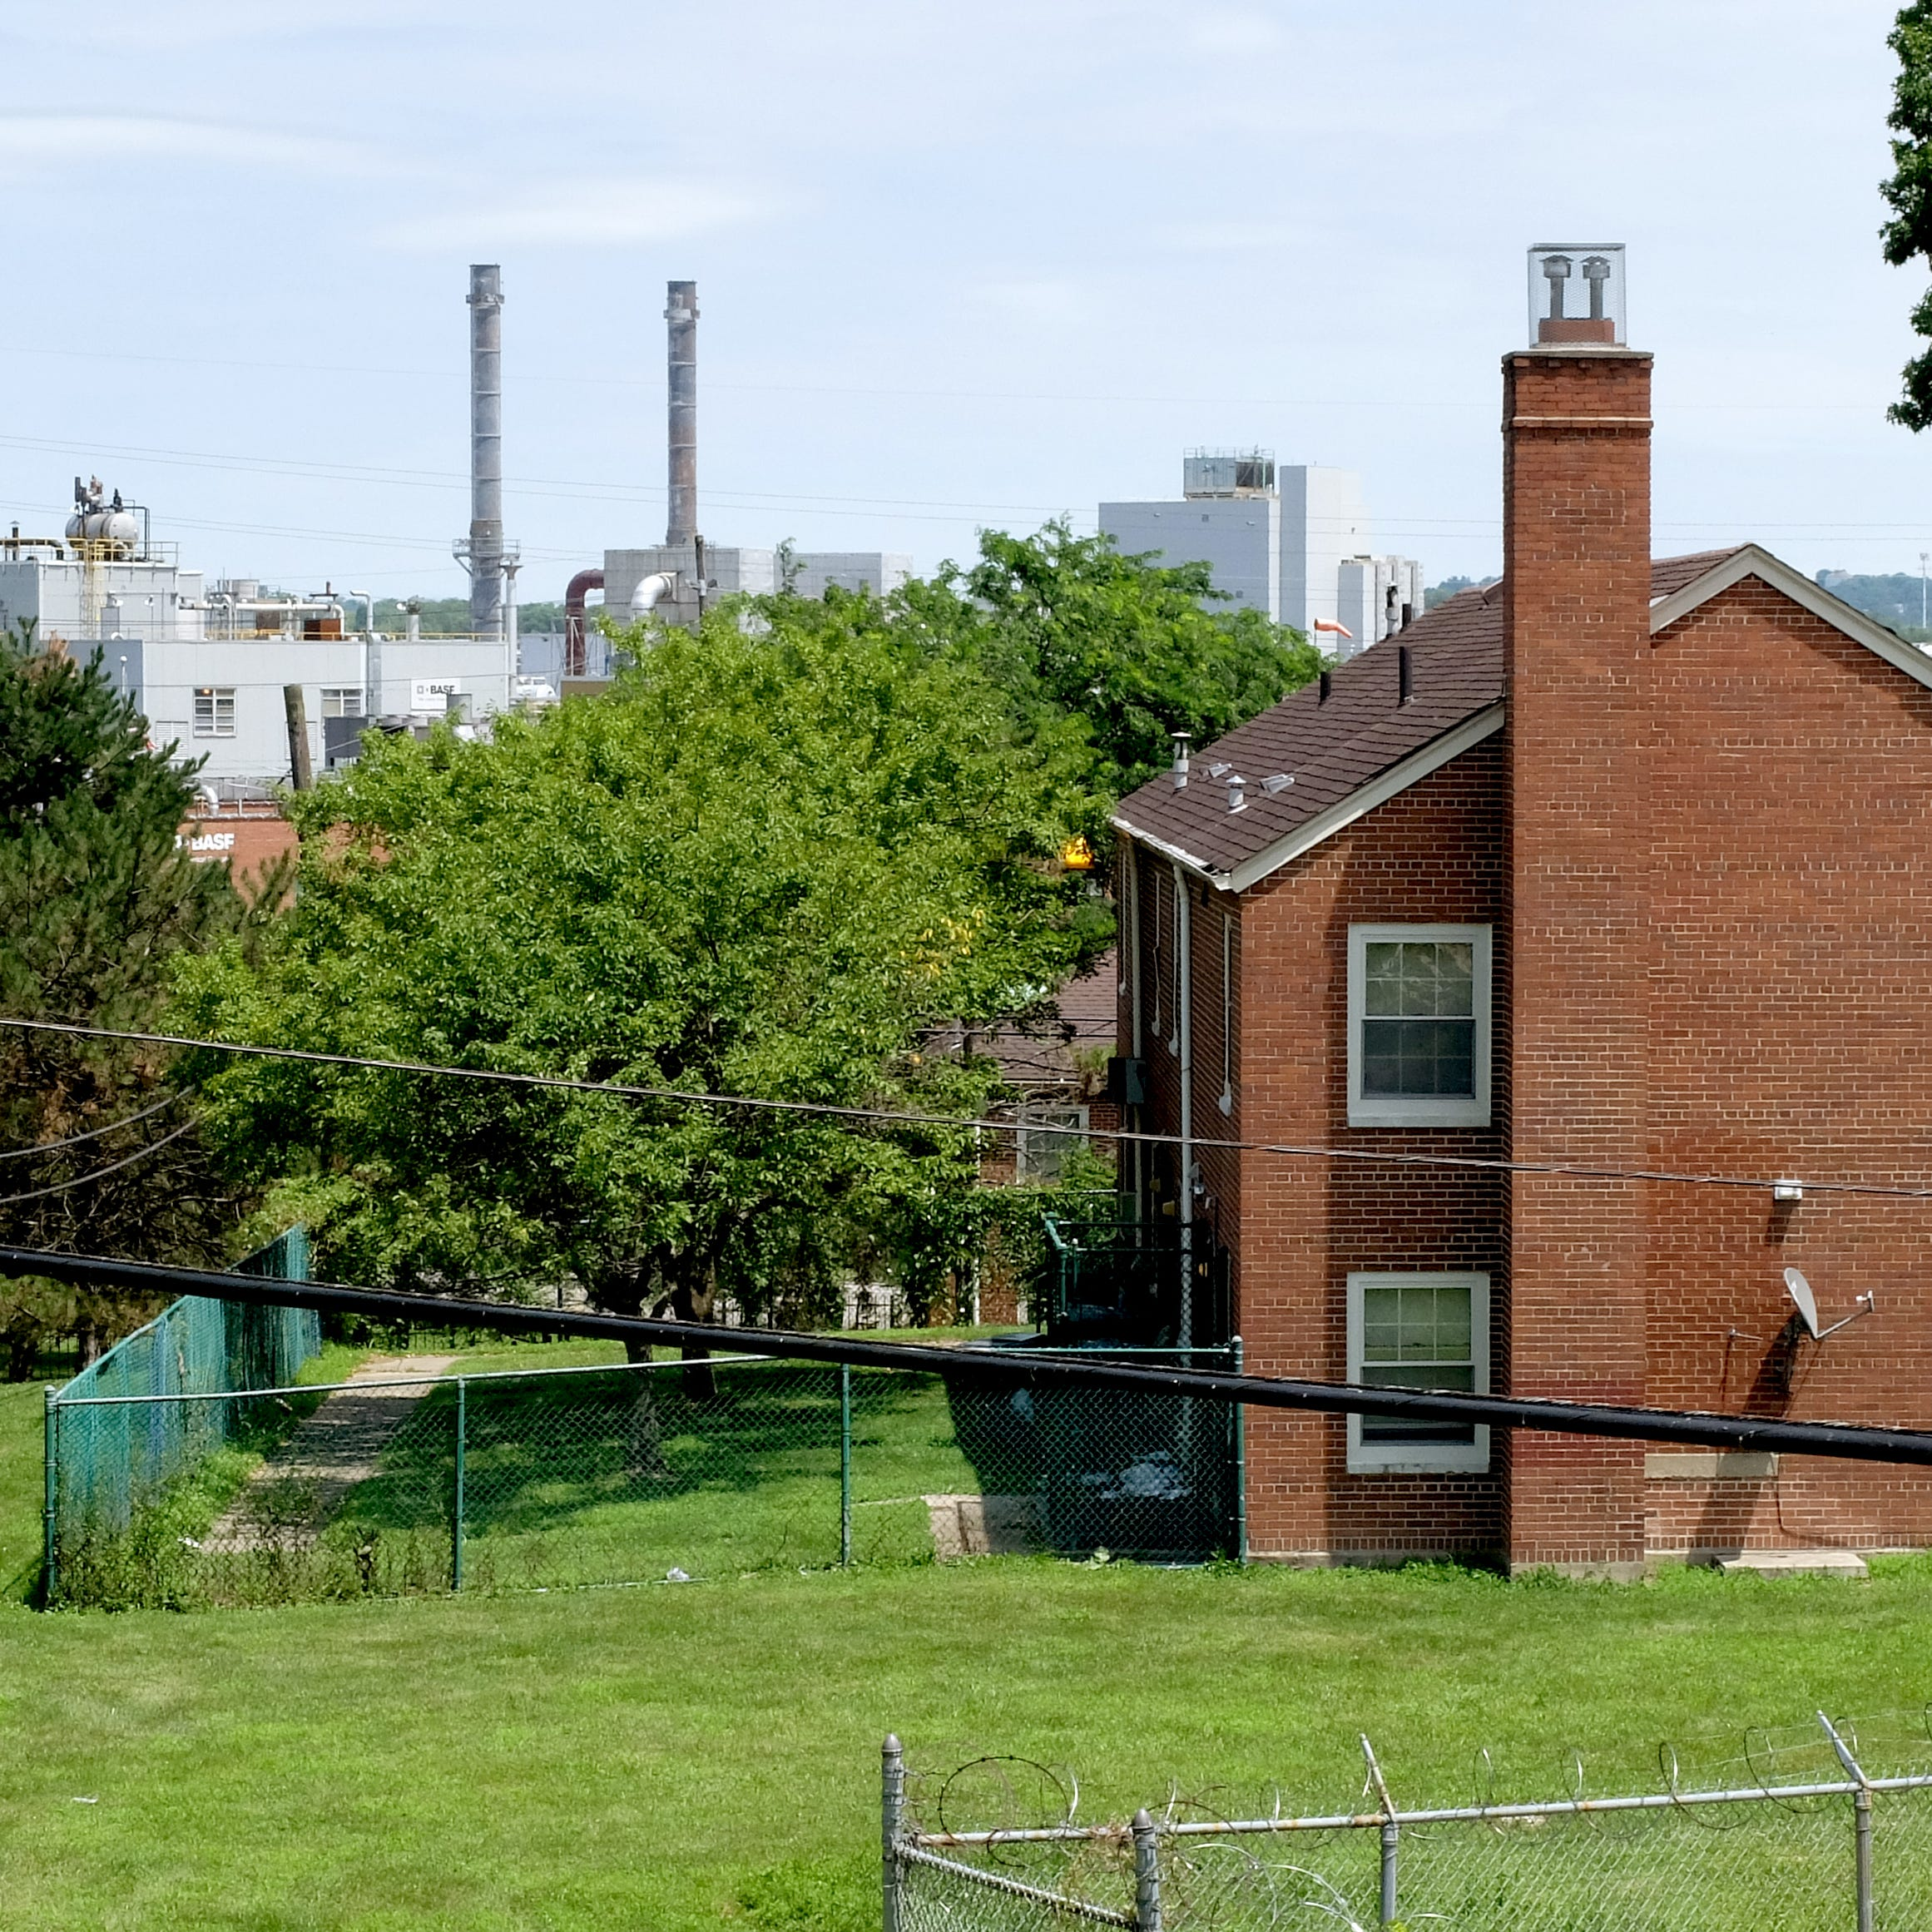 Winton Terrace: 'We can't breathe' as neighboring industrial facilities pump out emissions